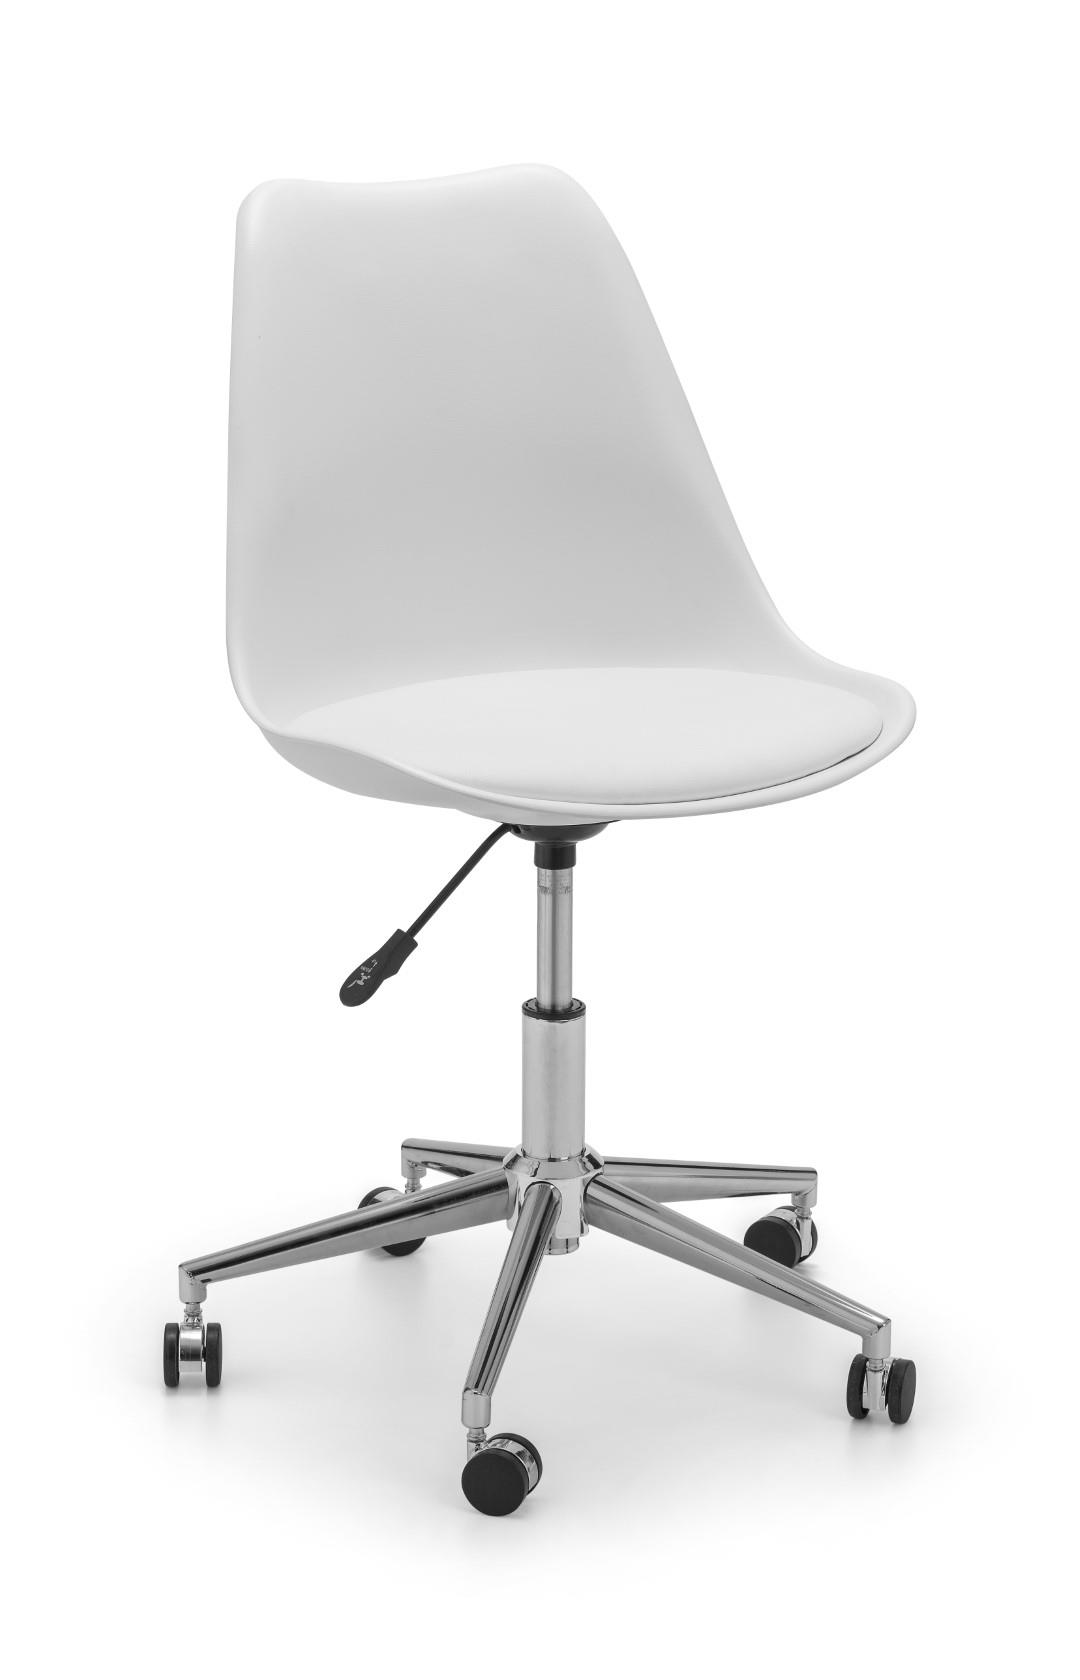 Julian Bowen Erika Office Desk Computer Chair White Leather Chrome Adjustable